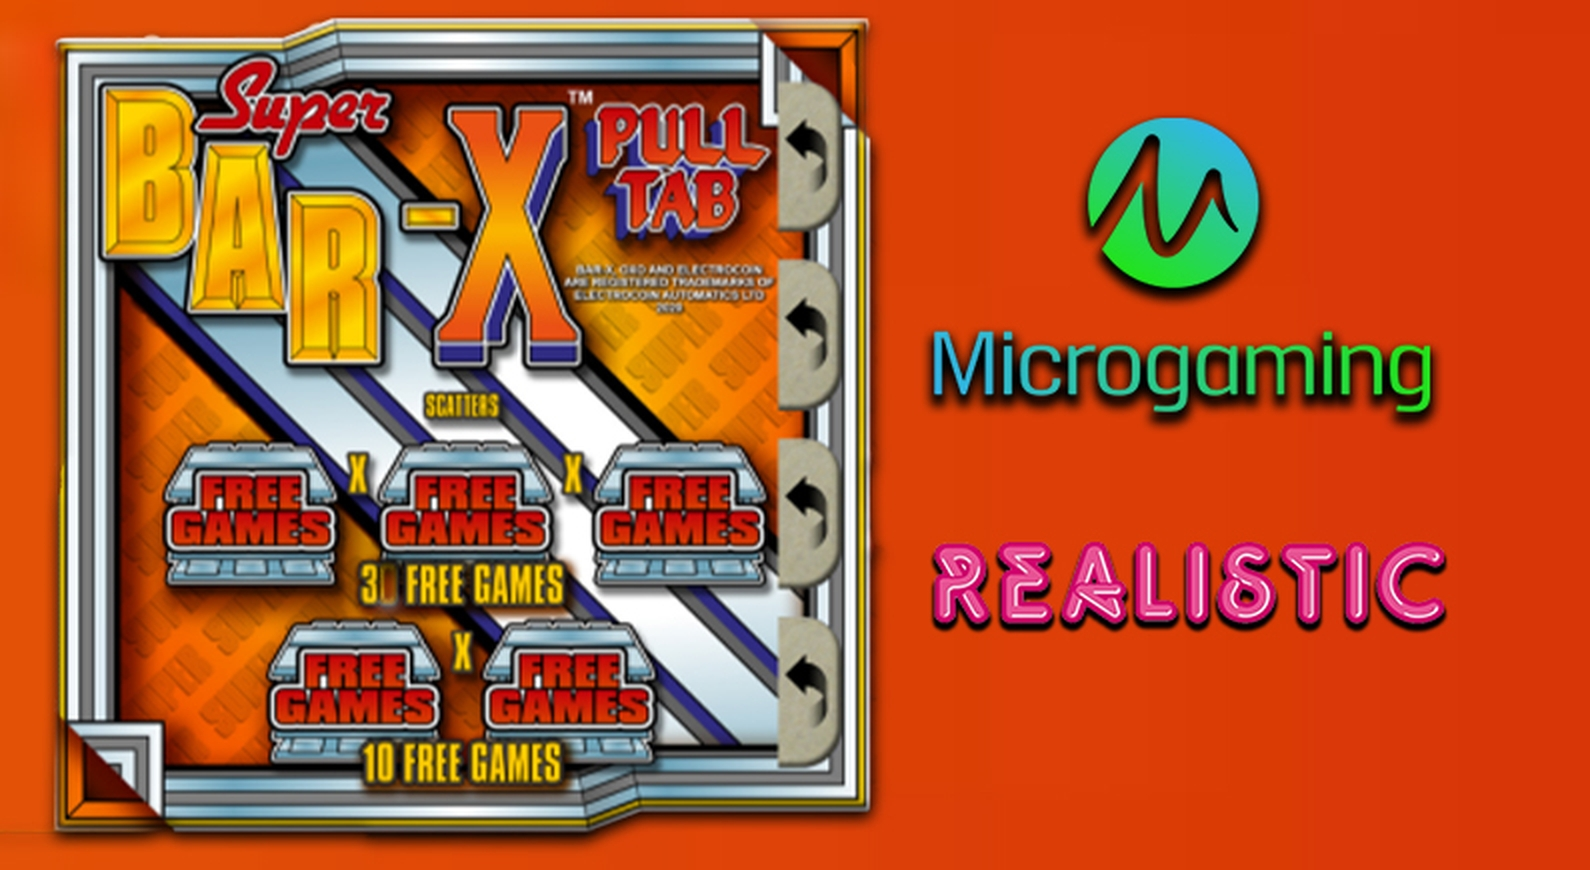 The Bar-X Pull Tab Online Slot Demo Game by Realistic Games